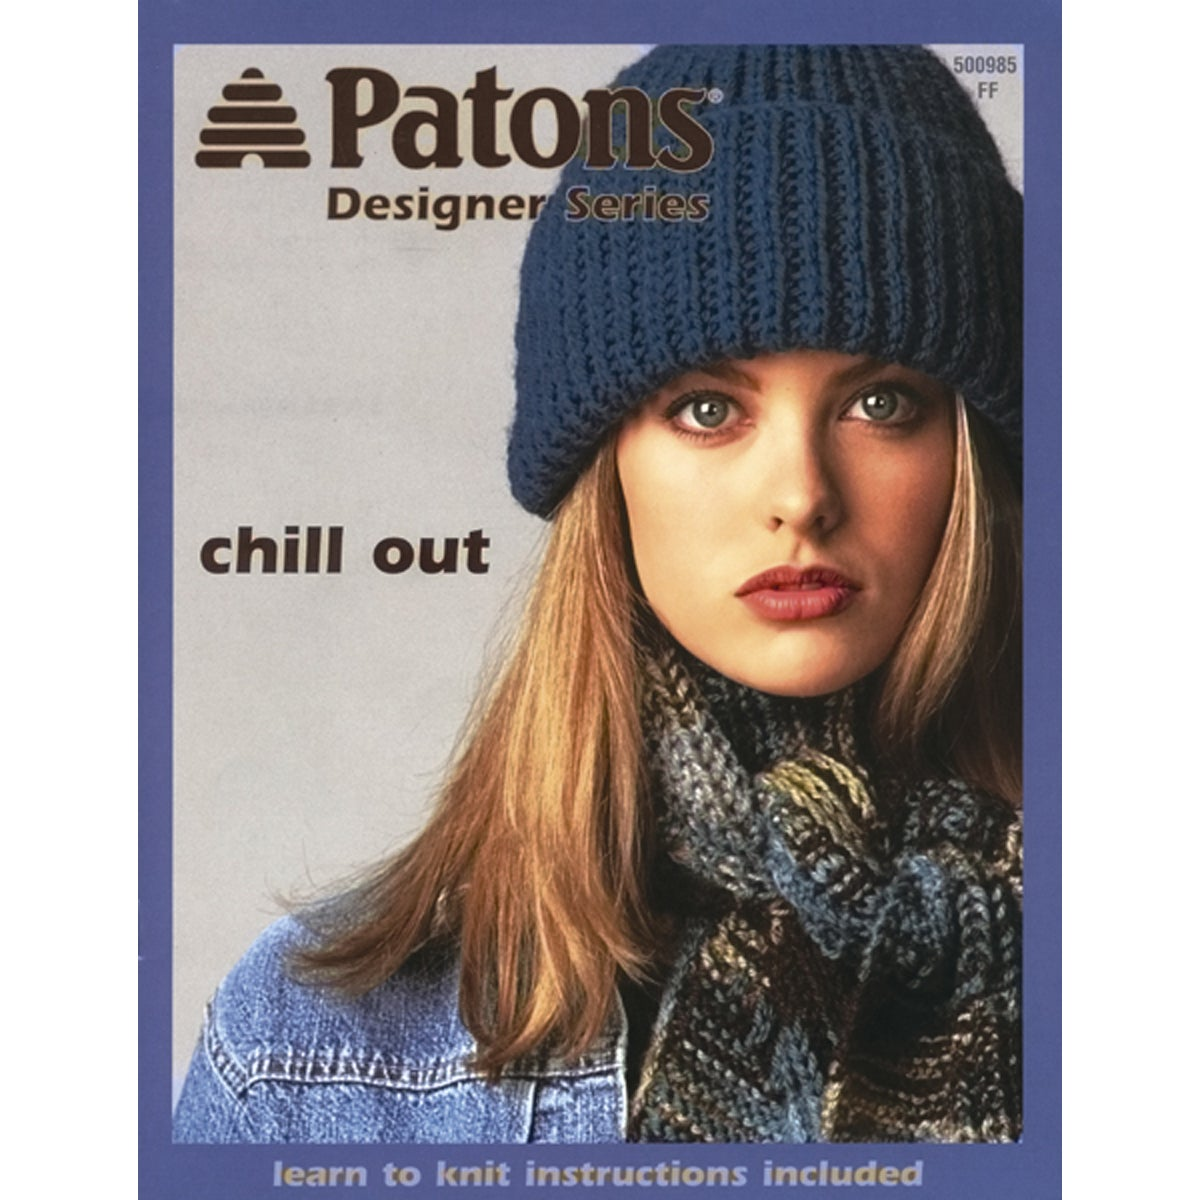 Patons-Chill Out -Classic Wool & Decor